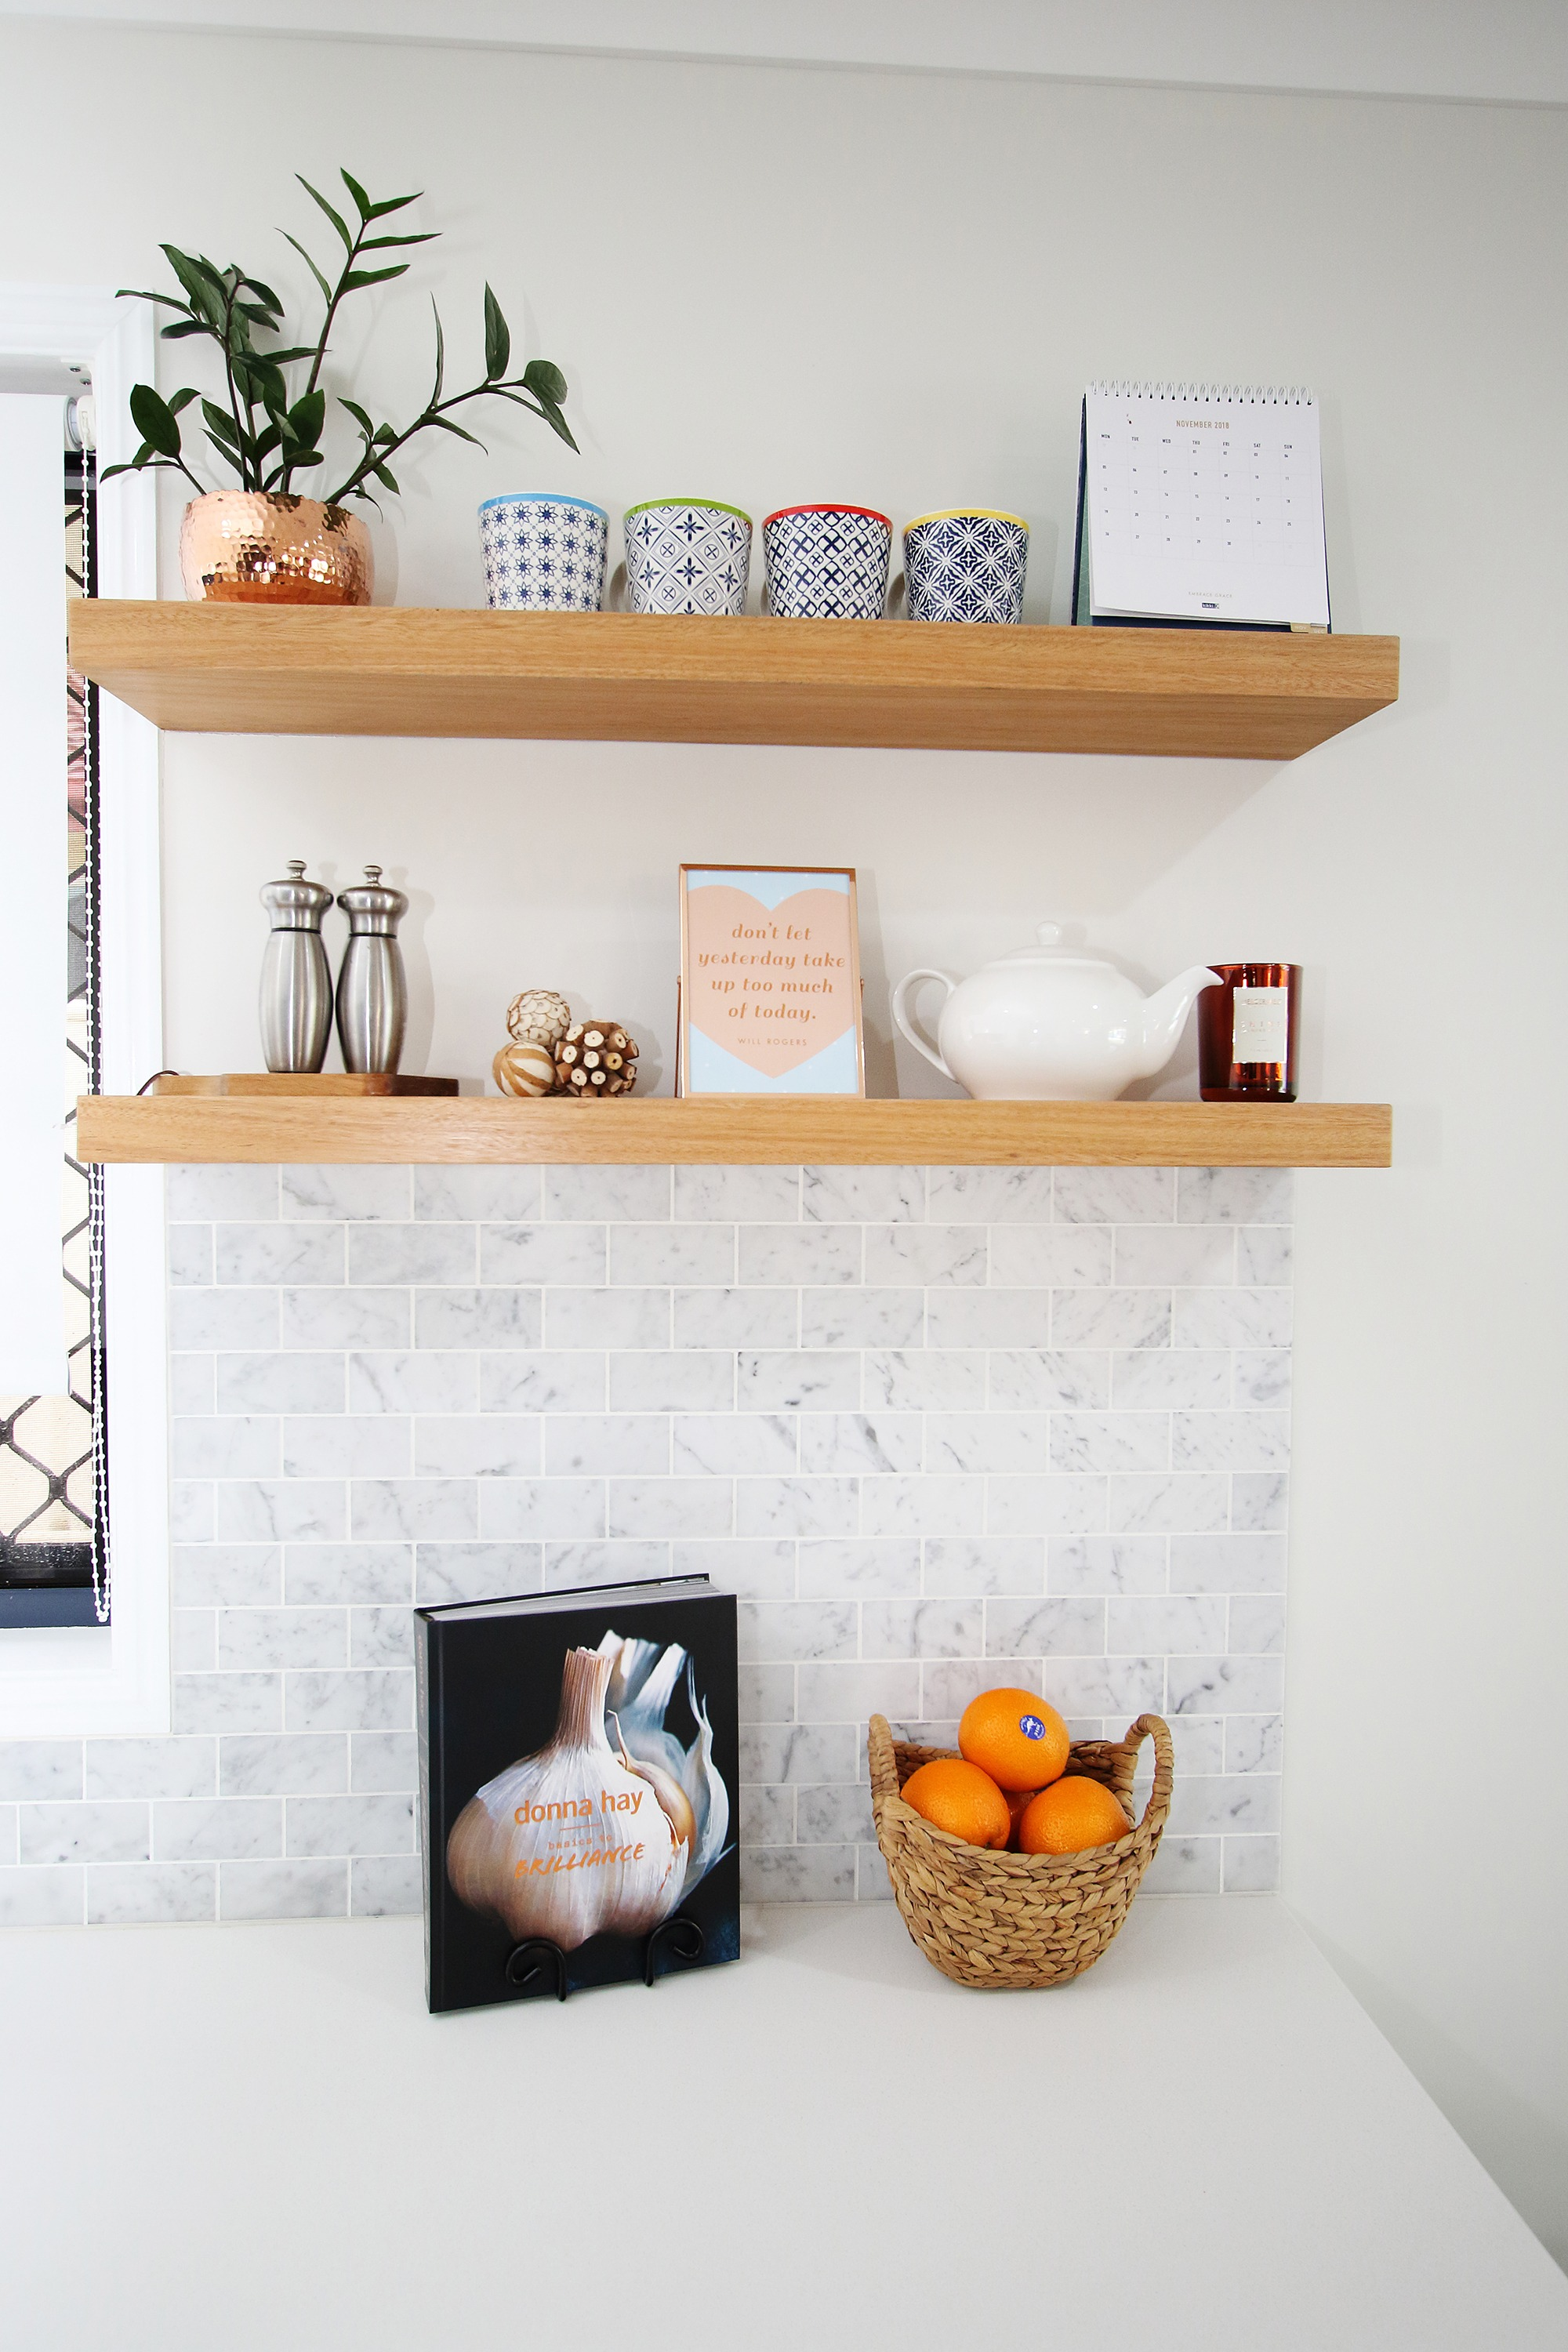 Decorative Shelves & Accessories